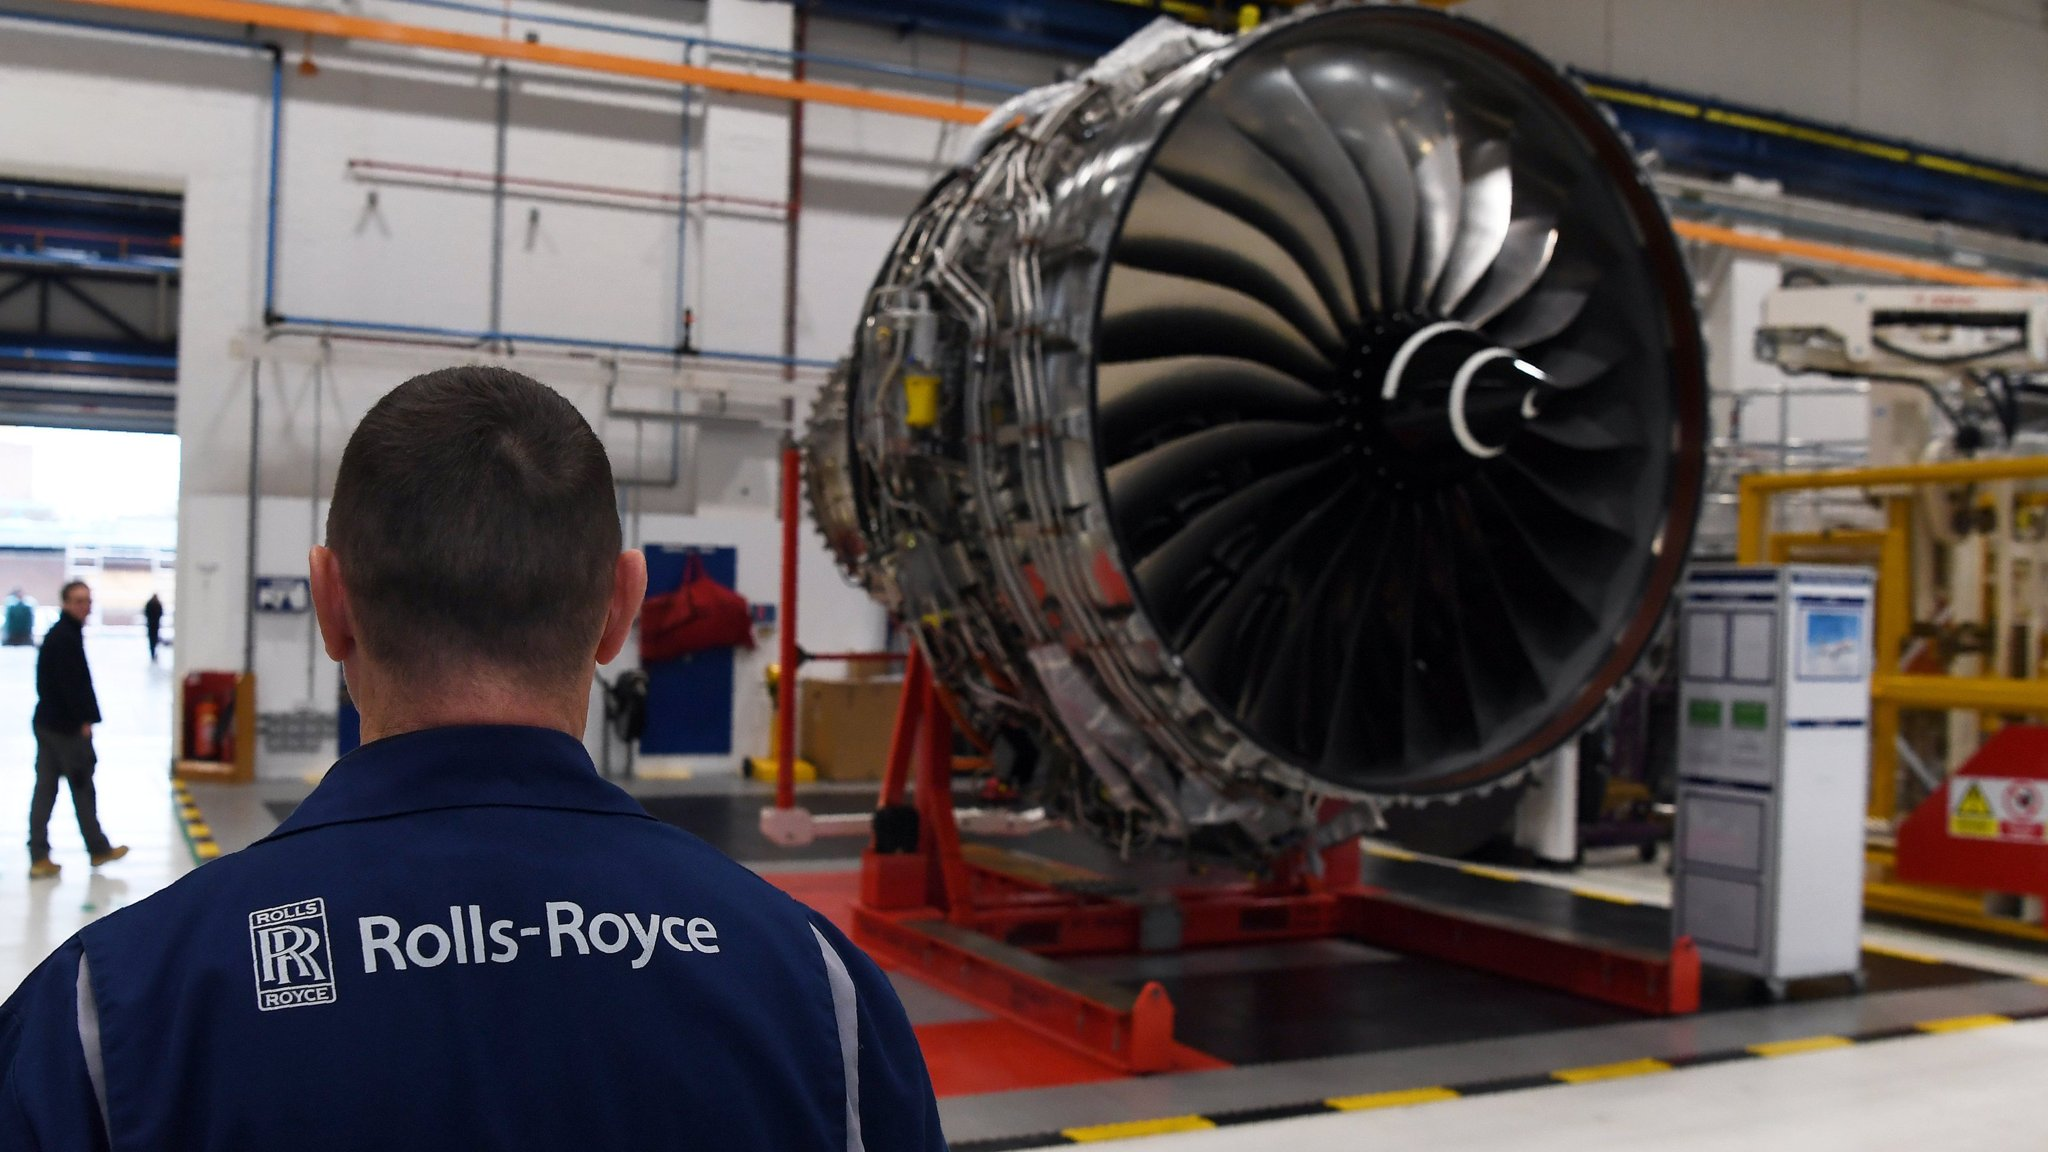 US authorities reveal charges in Rolls-Royce bribery scheme